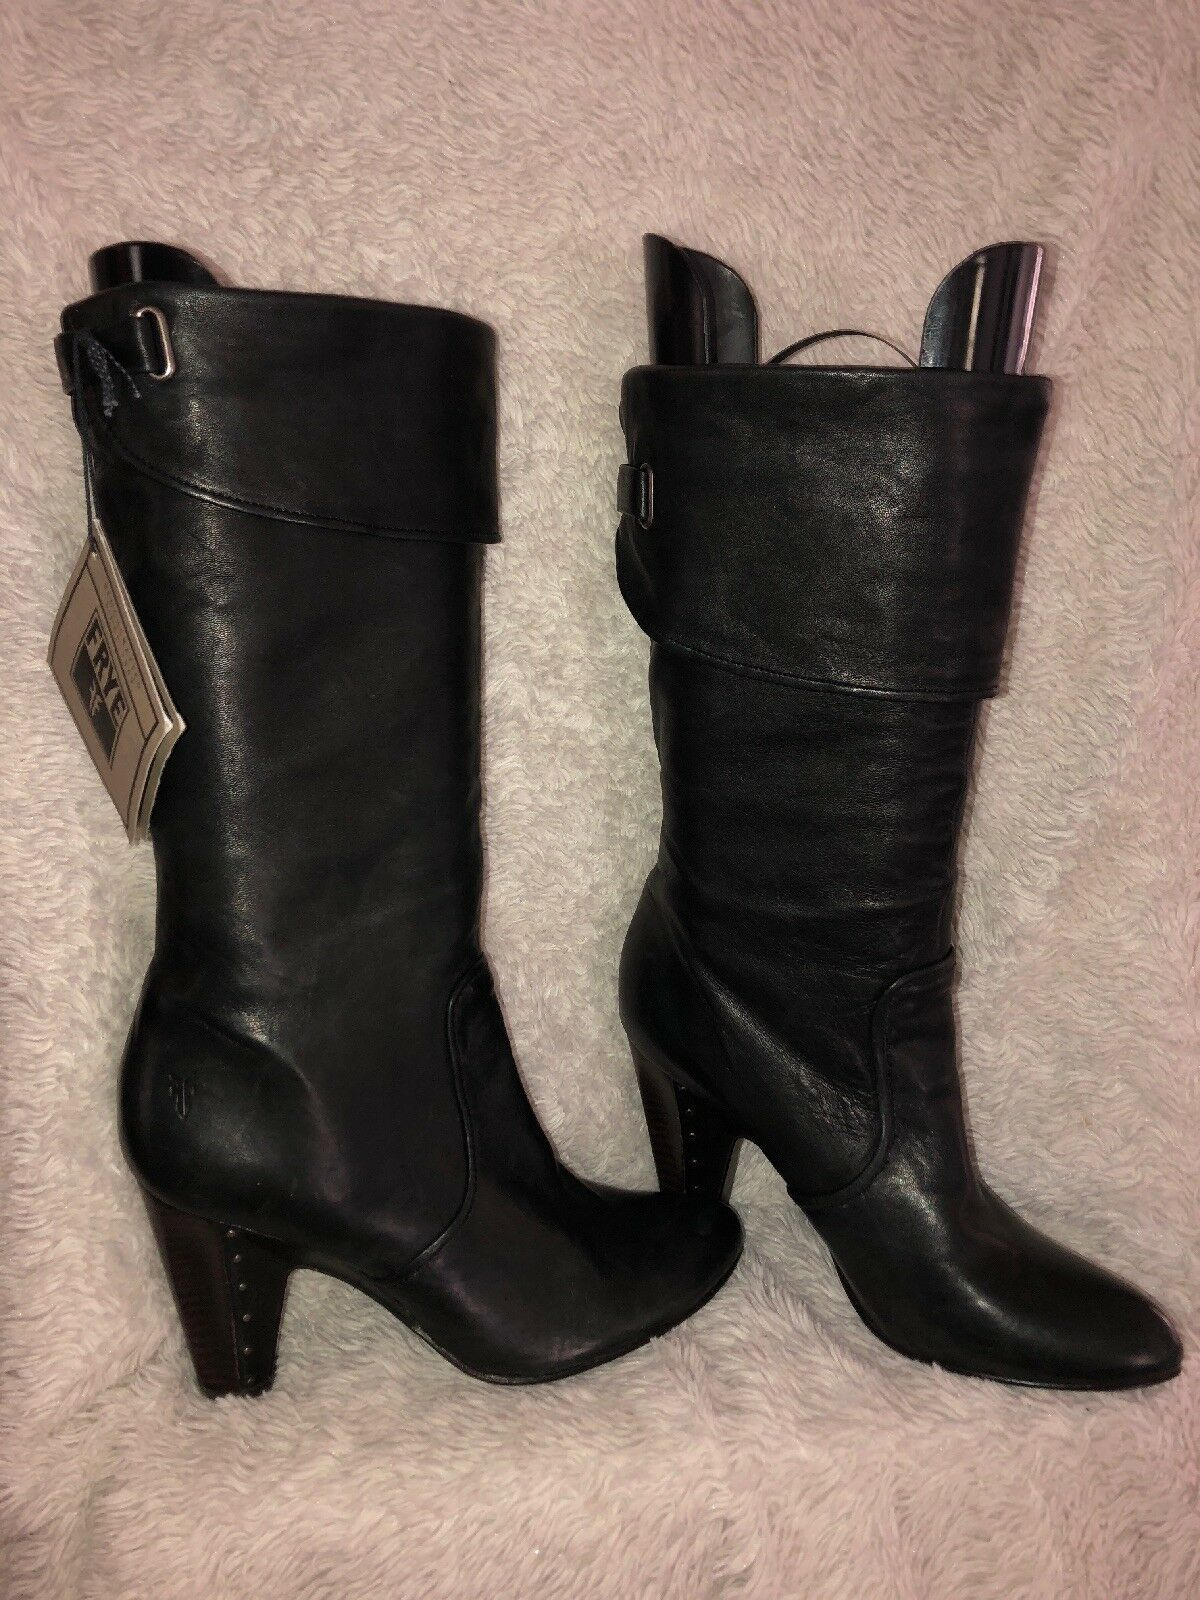 FRYE Bethany Cuff Shortie Boots Black Leather Mid Calf  Sz 9 NWT